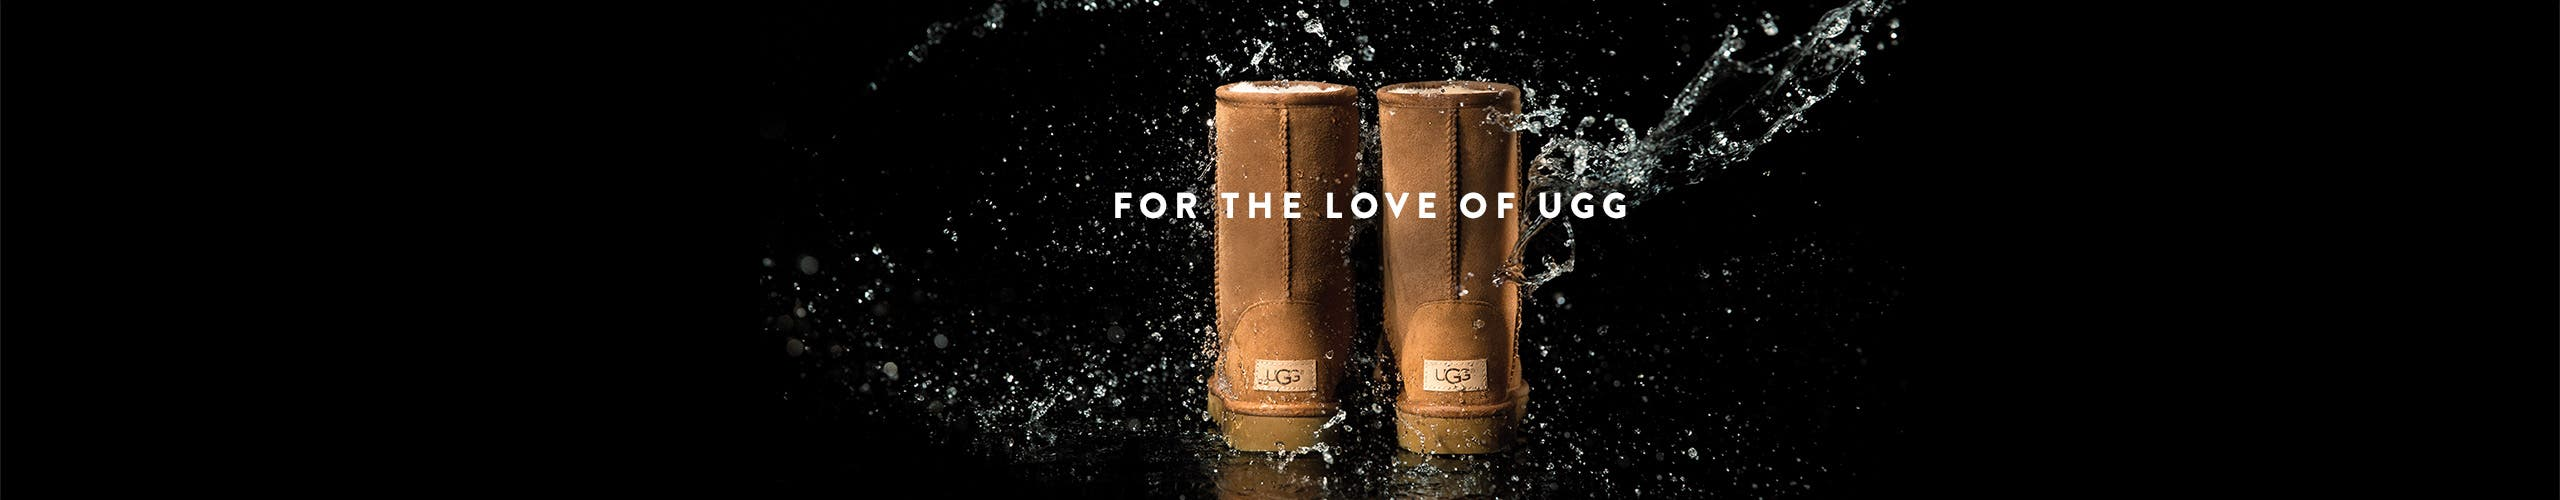 For the love of UGG.